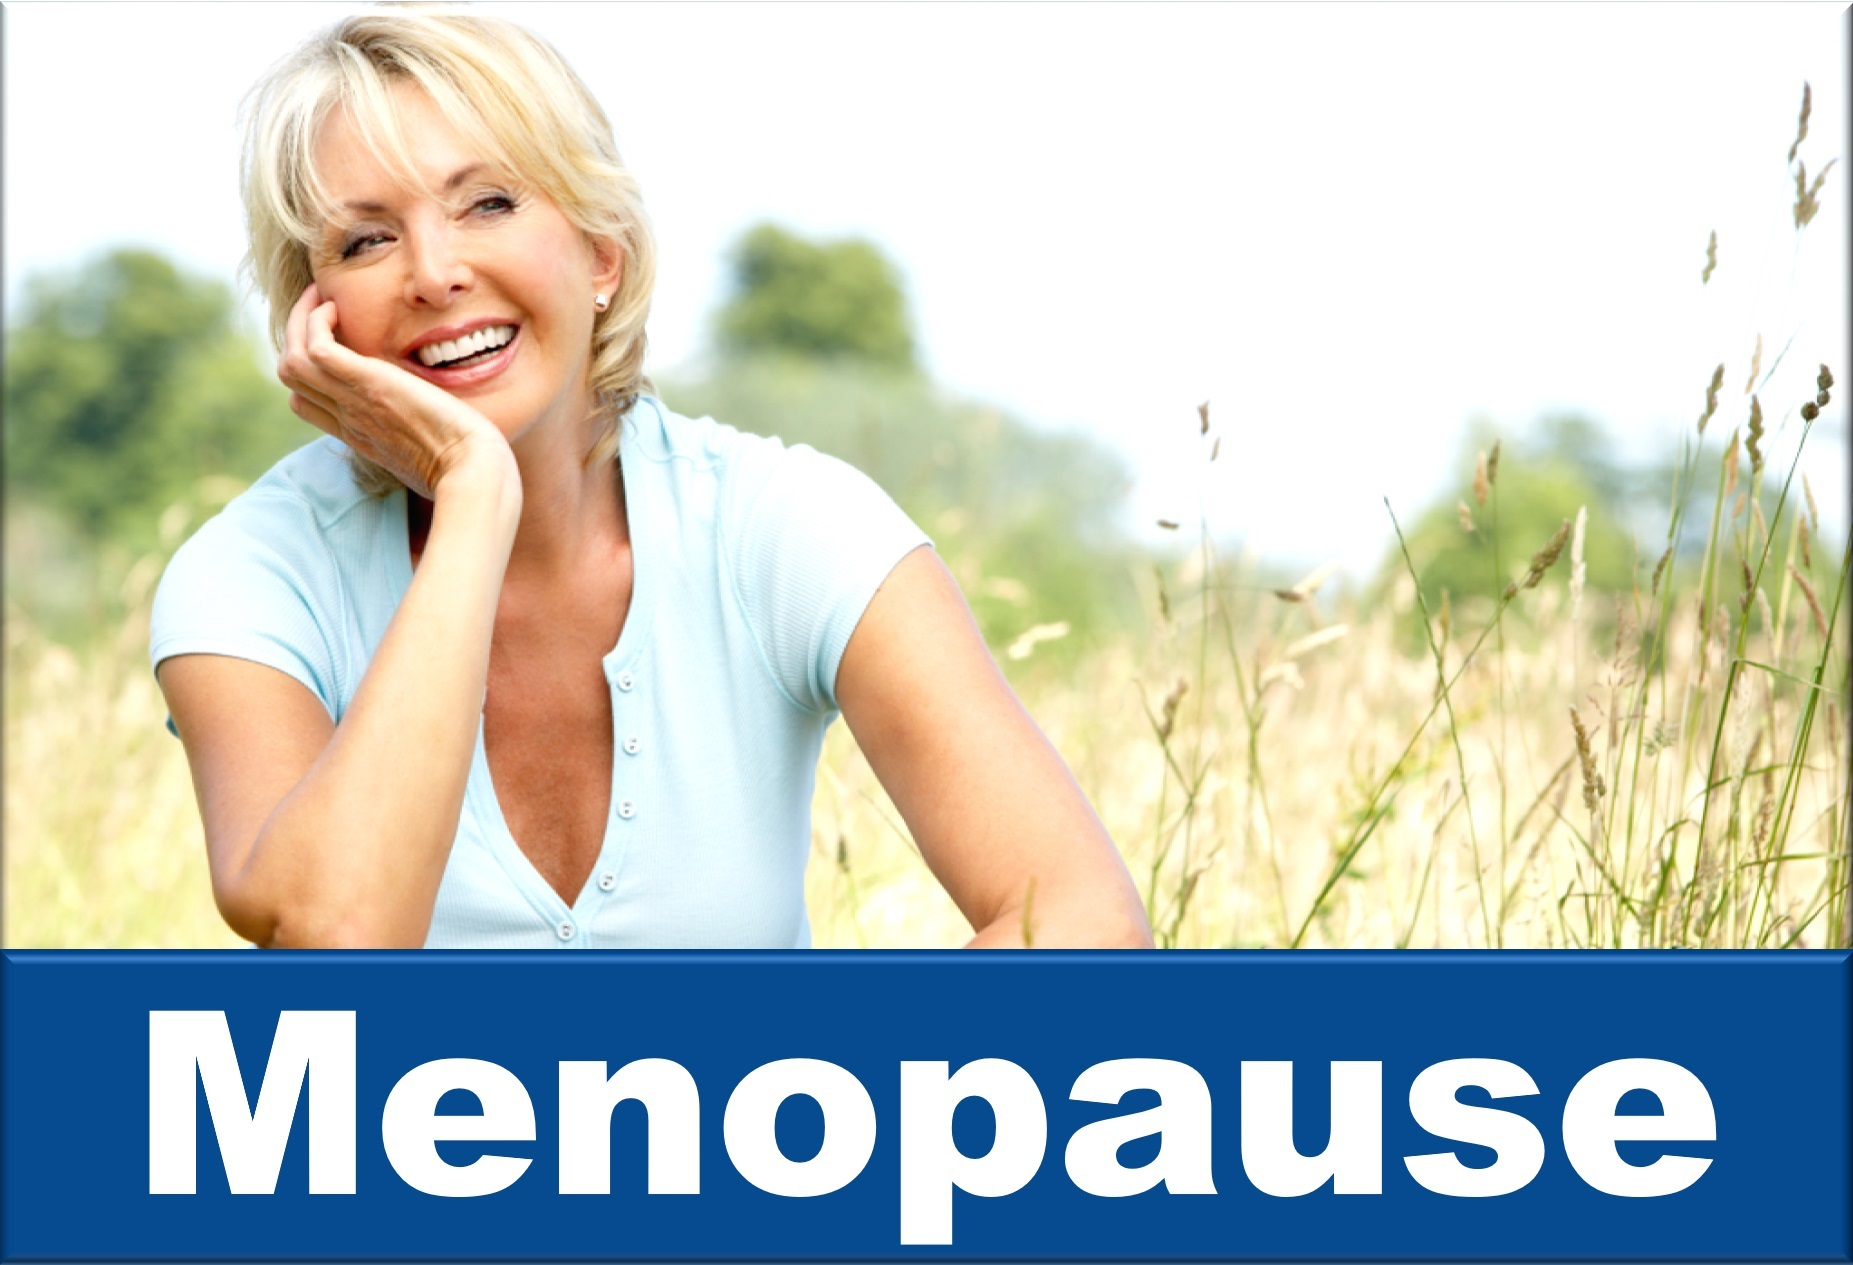 Learn about Menopause at Your Hormones.com